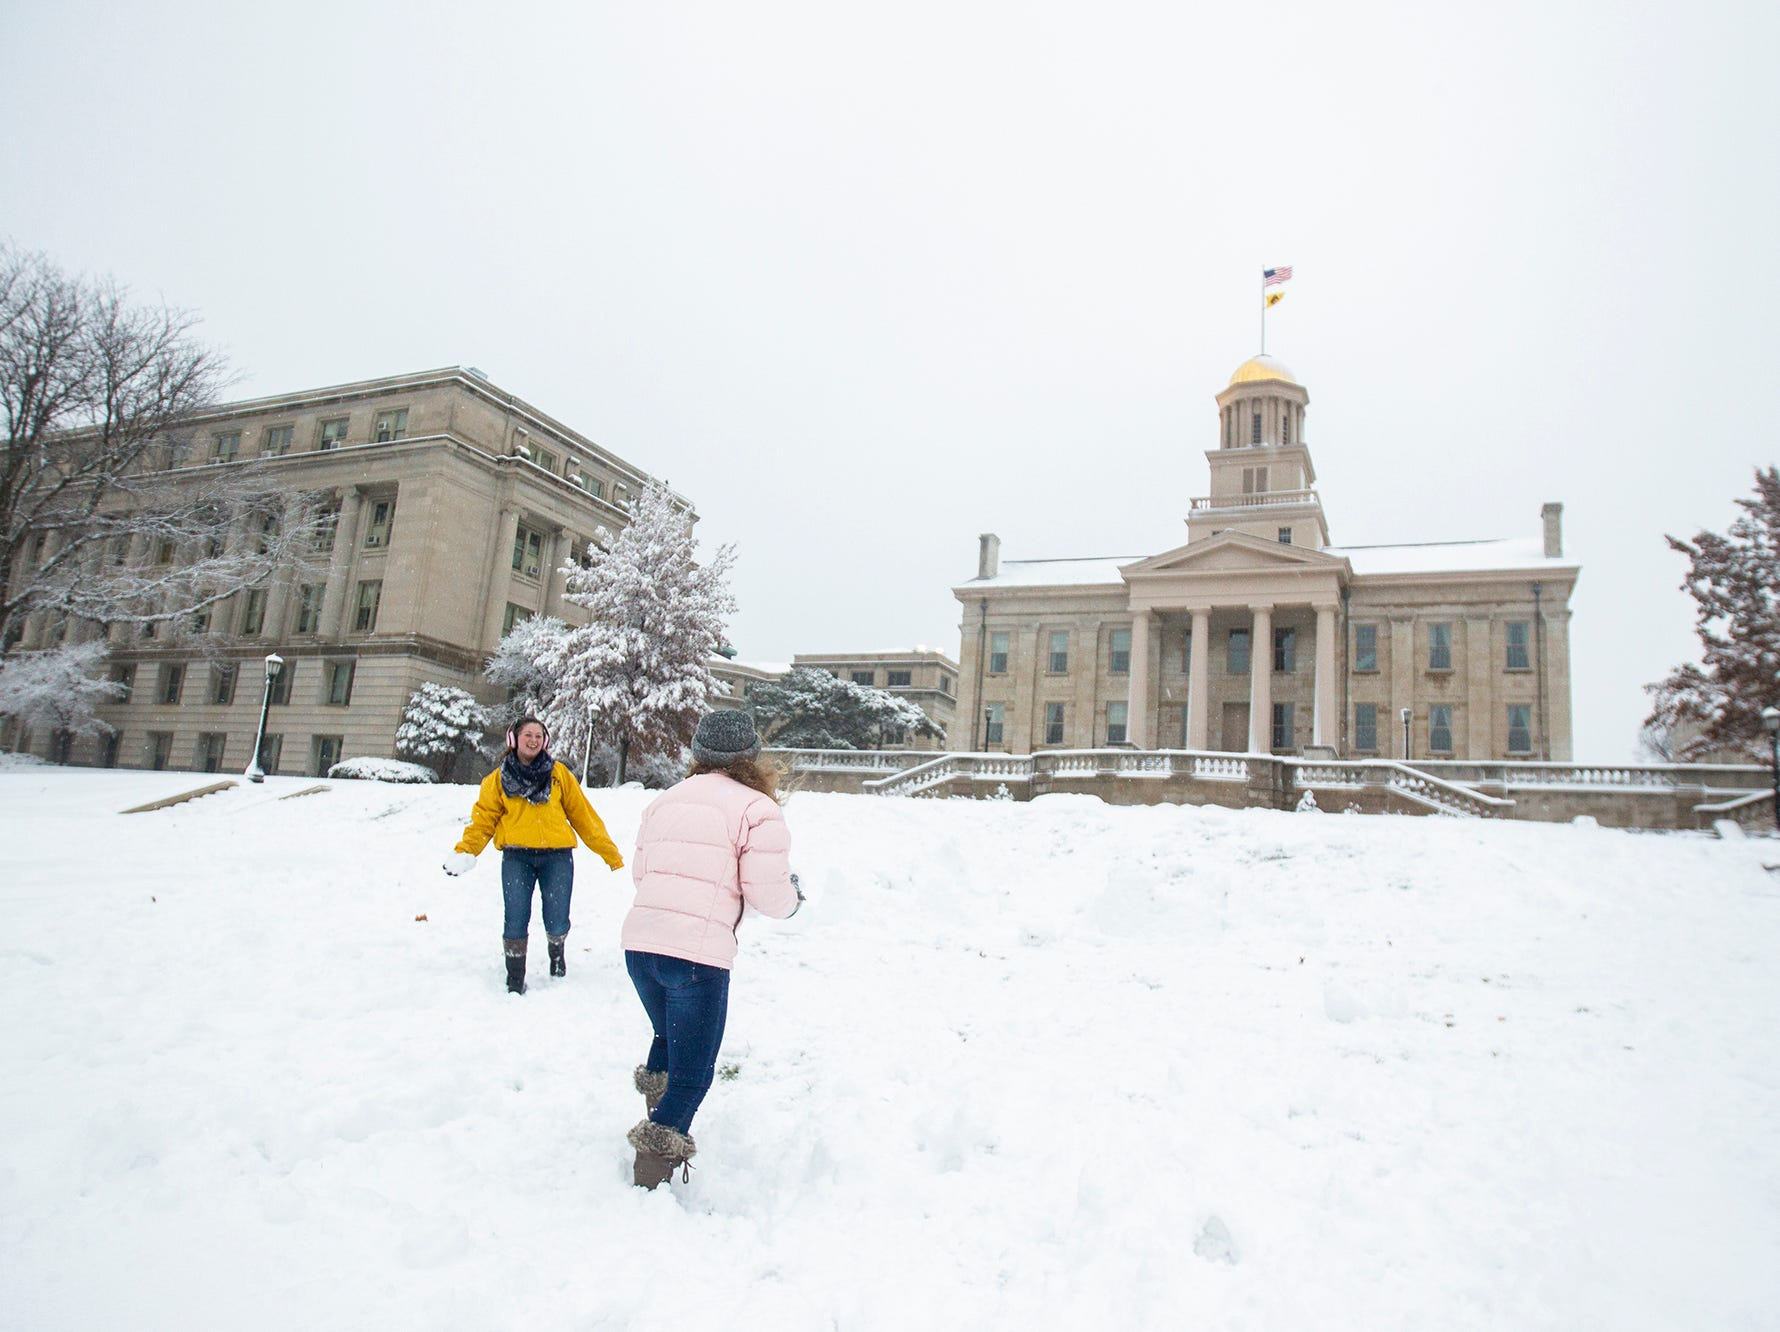 University of Iowa freshman Sarah Nighswonger, left, and Caroline Pickart throw snowballs during a snow storm on Sunday, Nov. 25, 2018, on the west side of the Pentacrest in Iowa City.